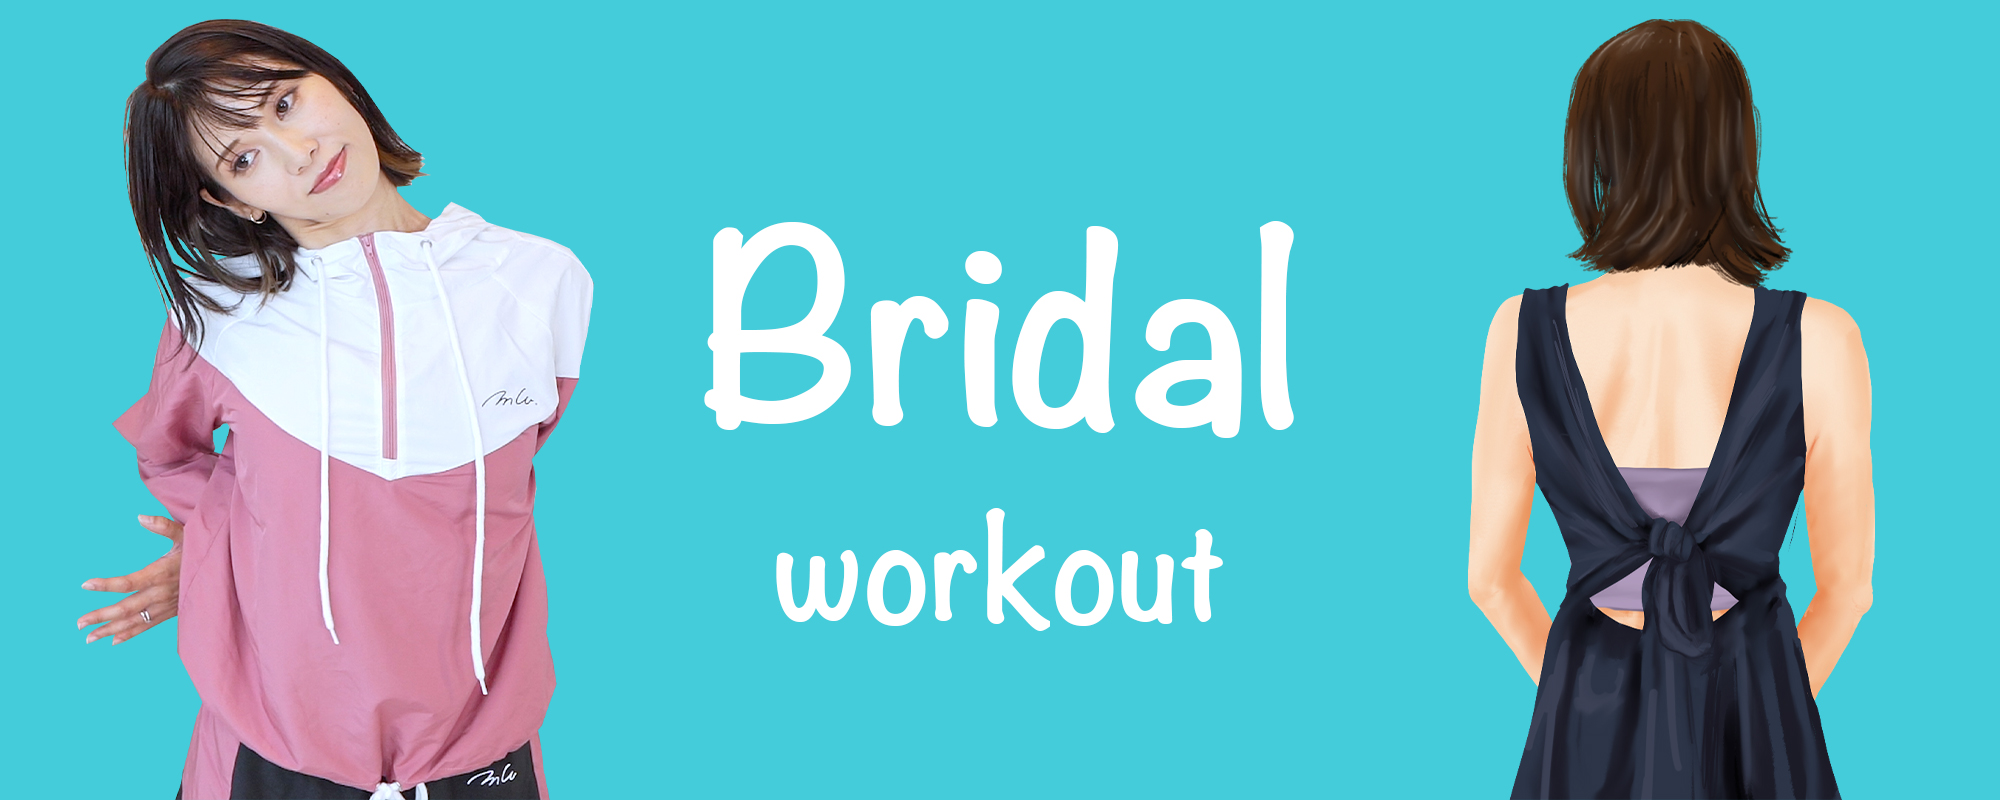 Bridal 4 weeks program